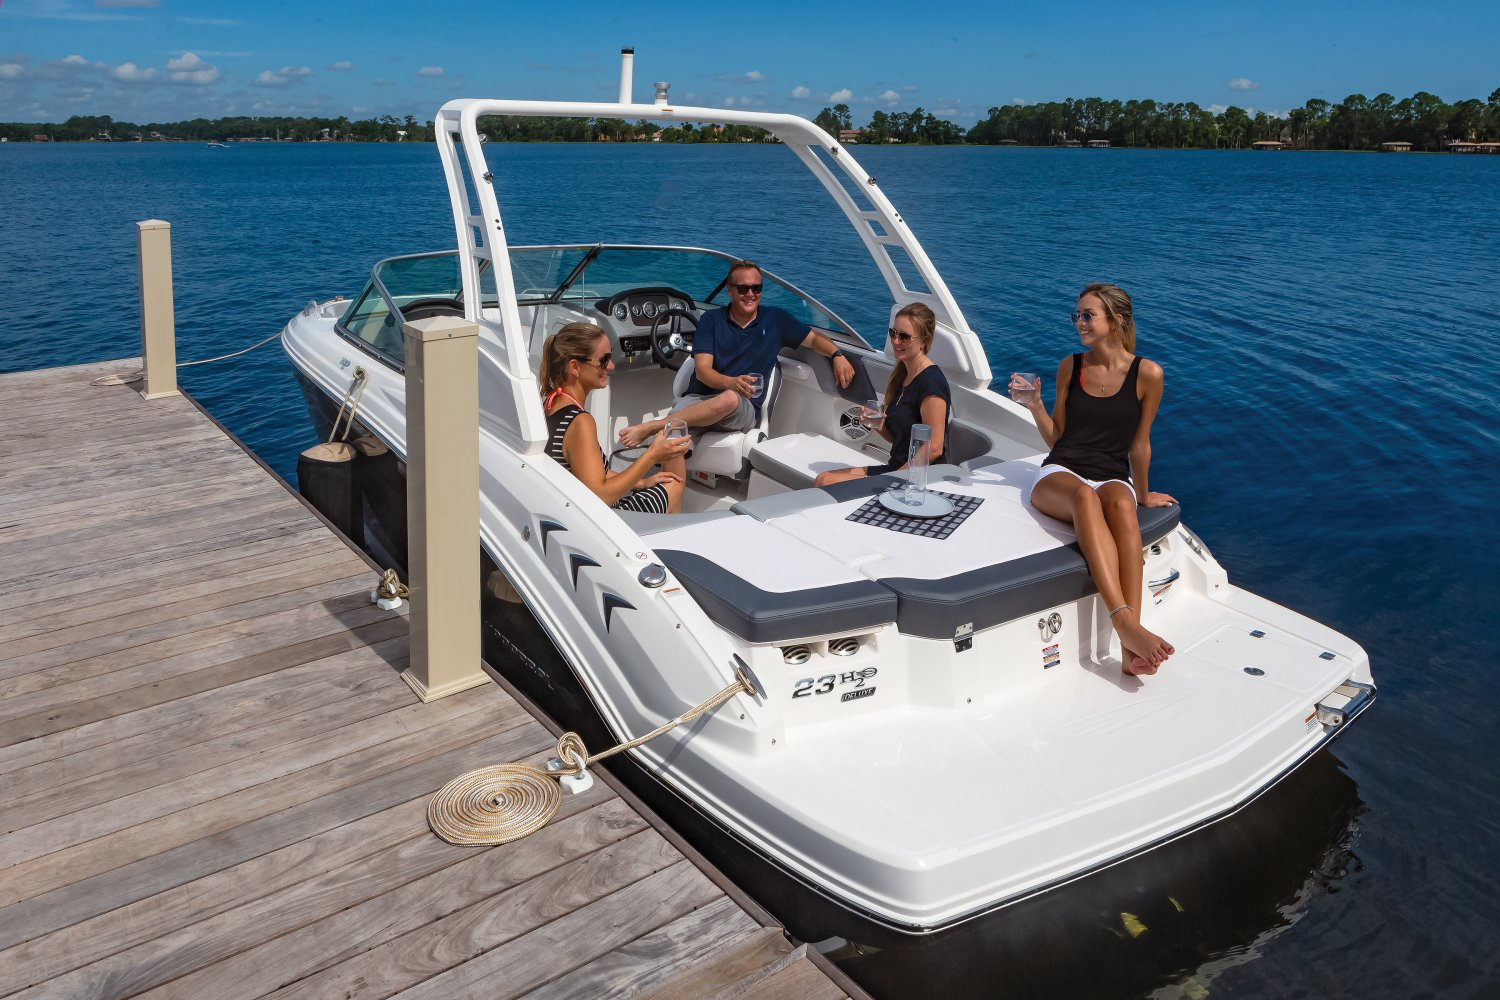 2019 Chaparral H2o 23 Sport